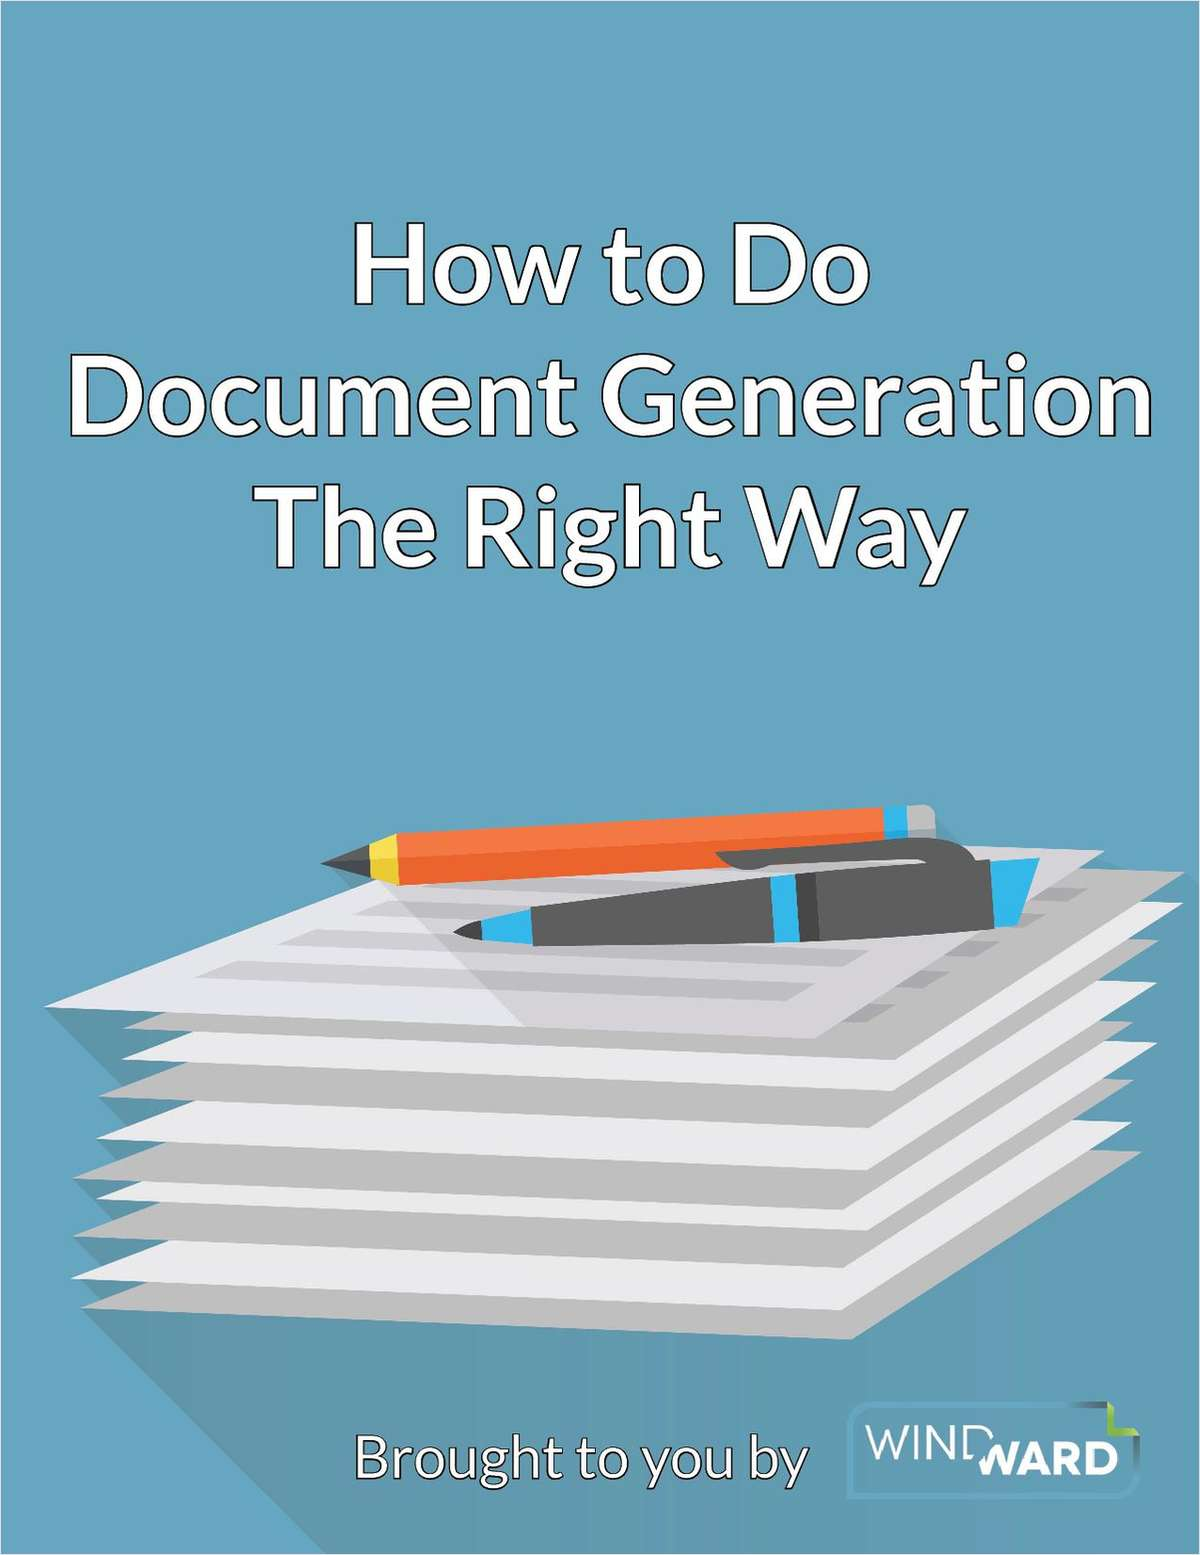 Tips and Tricks for Great Document Generation